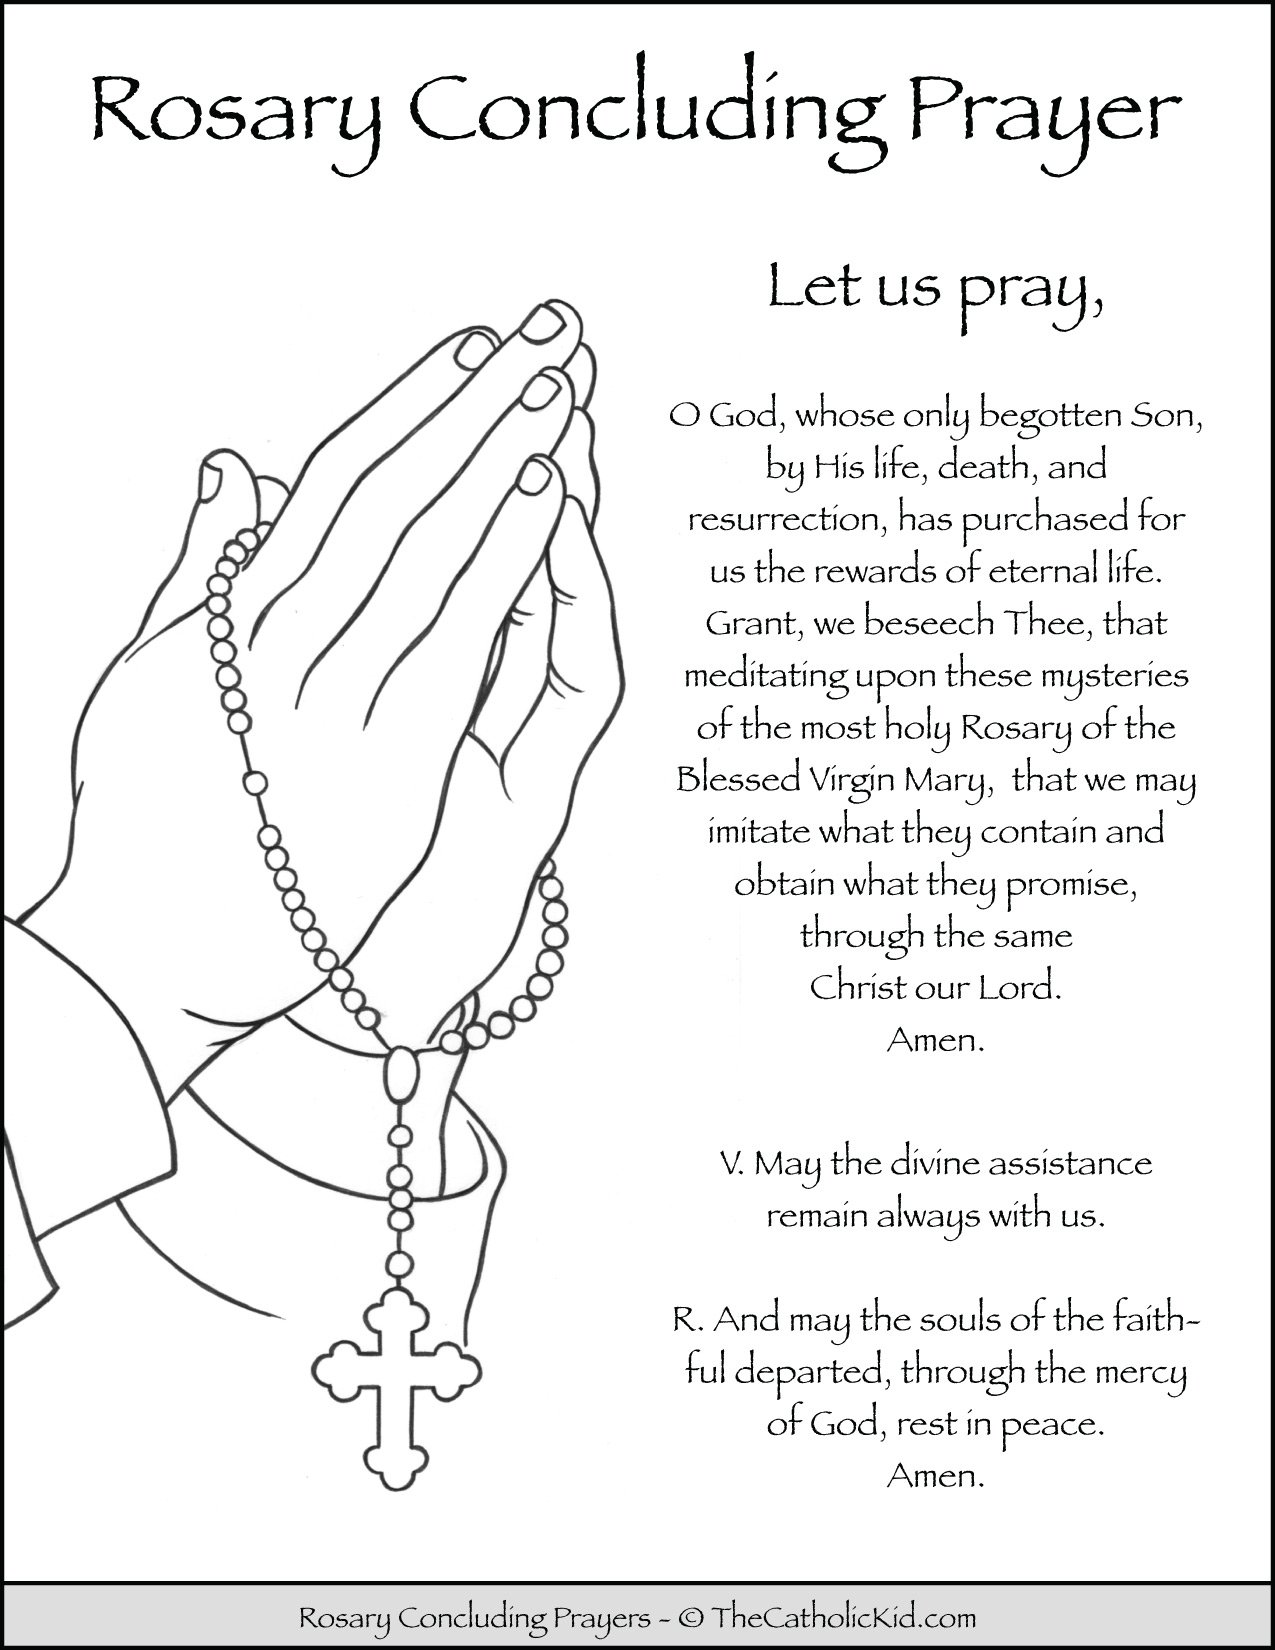 Rosary Concluding Prayers Coloring Page